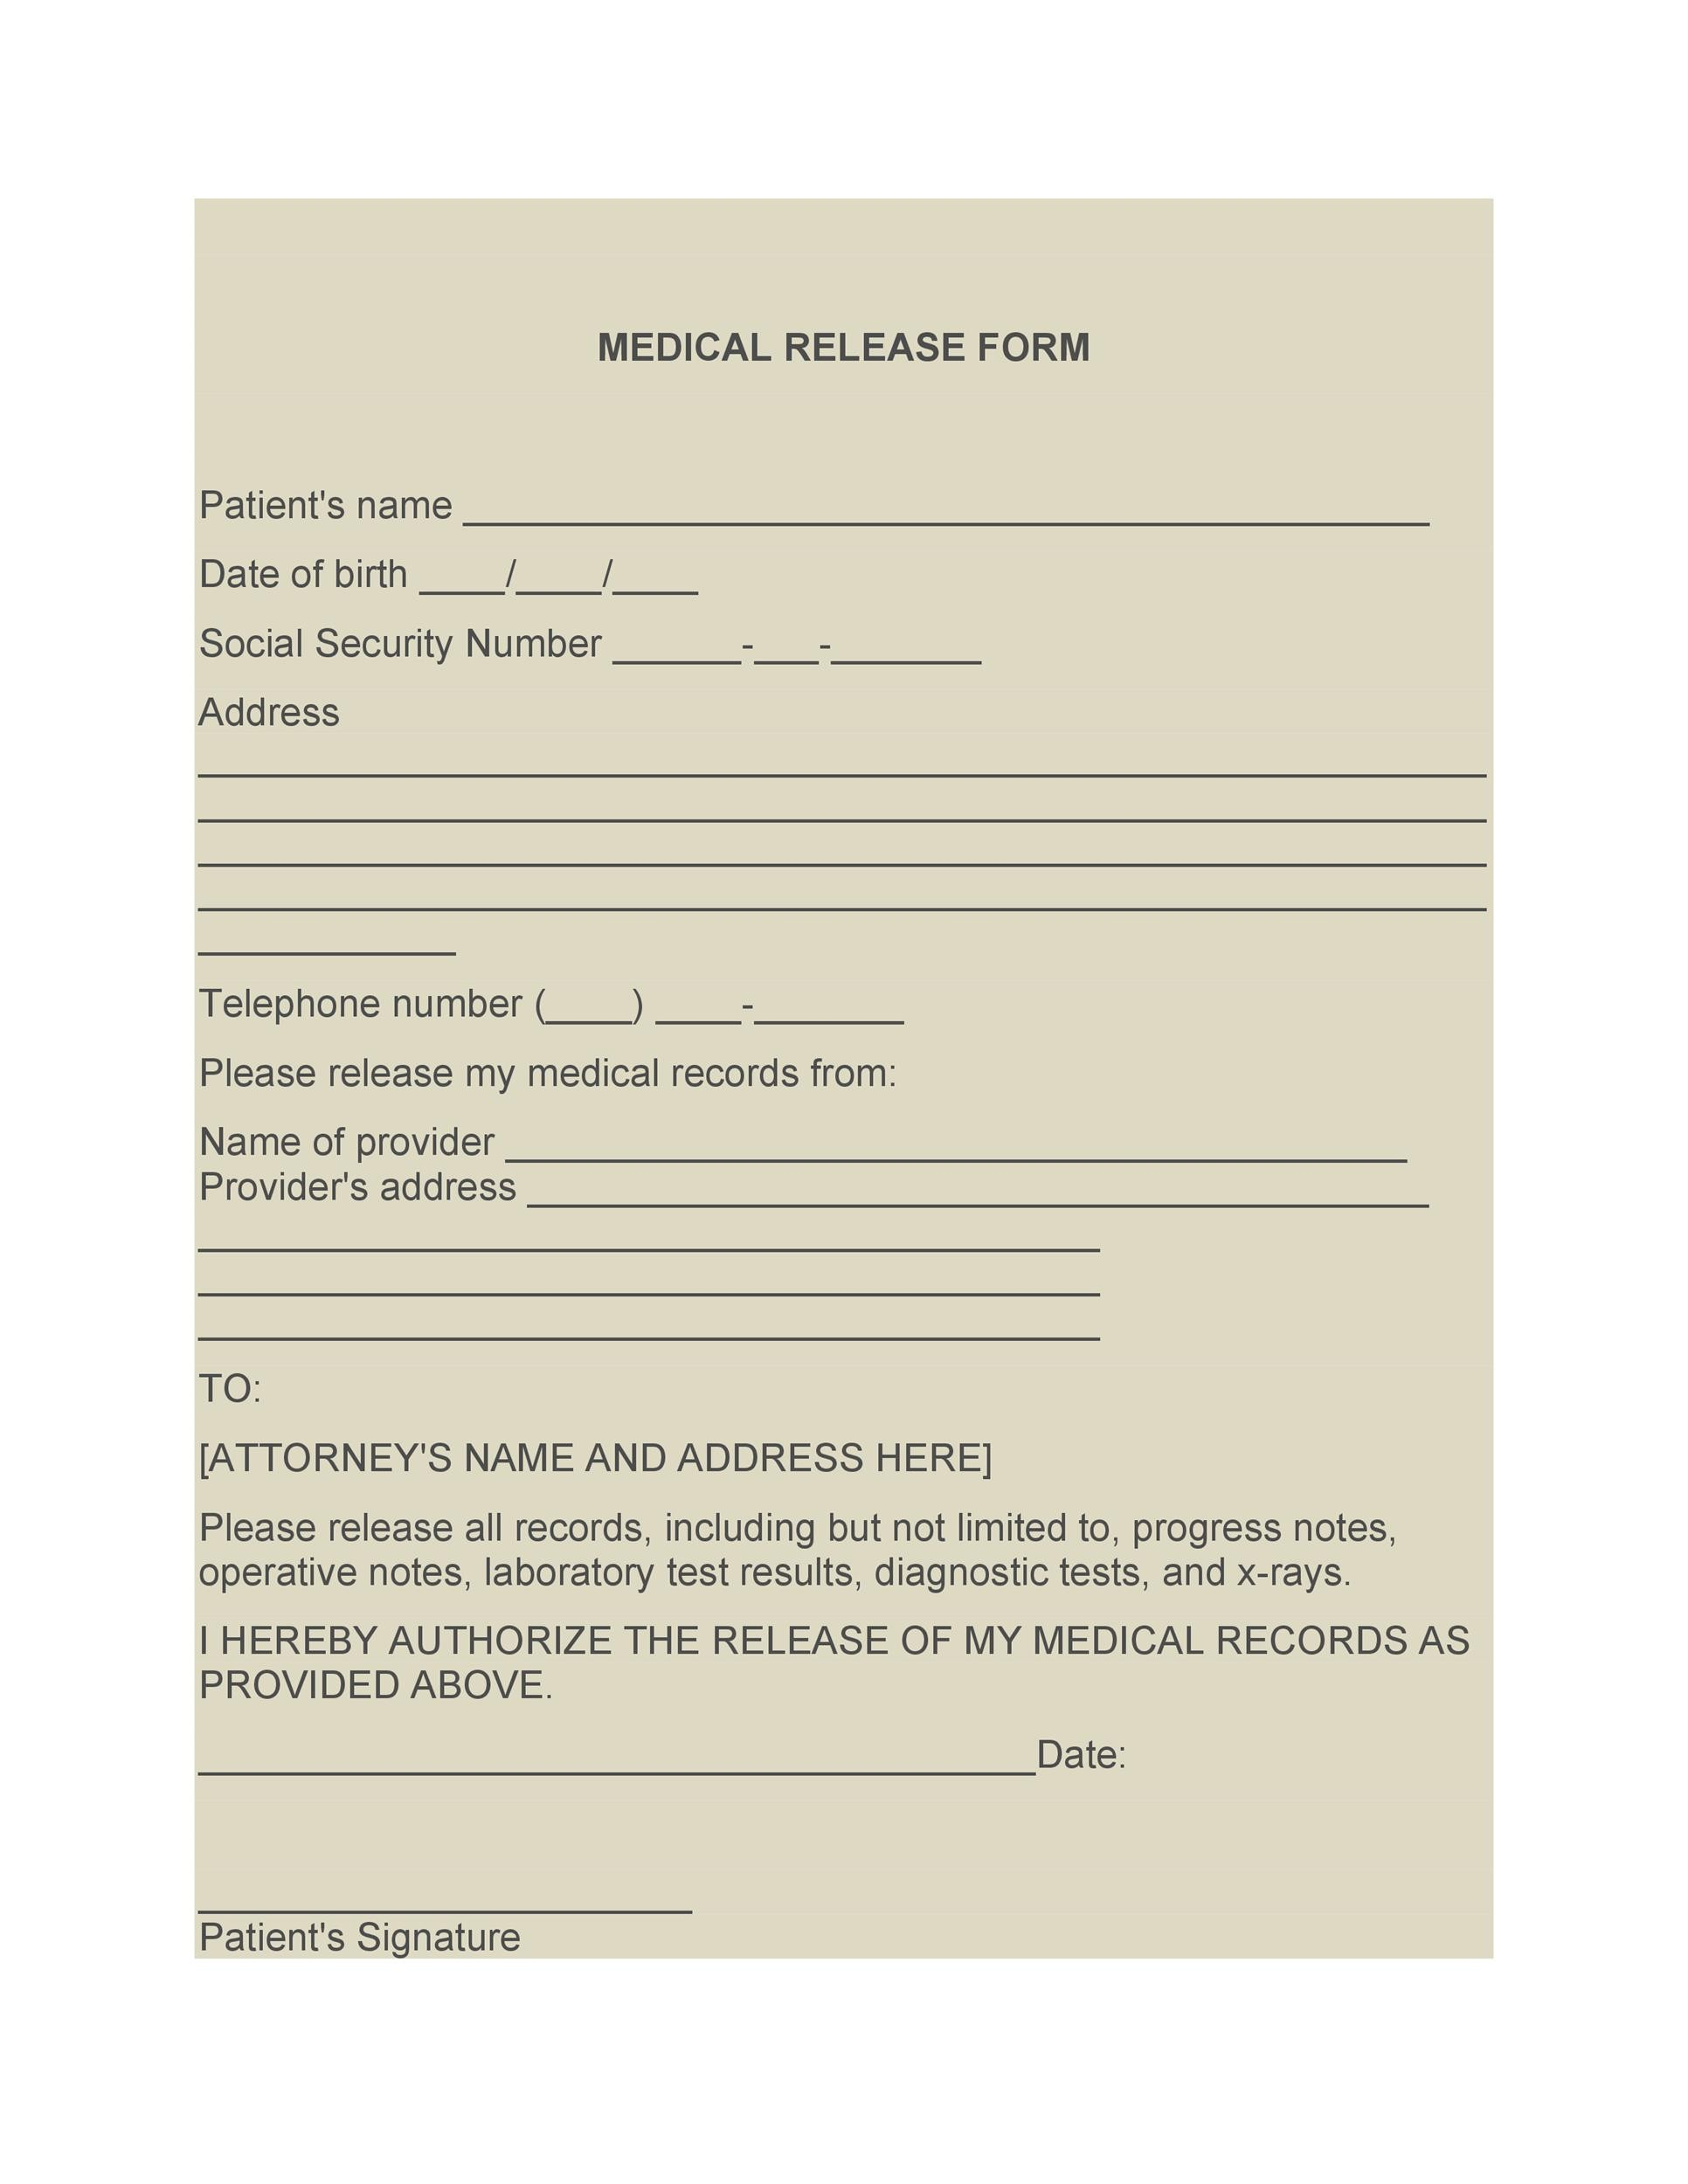 Medical Consent Form Sample Medical Consent Form  Printable